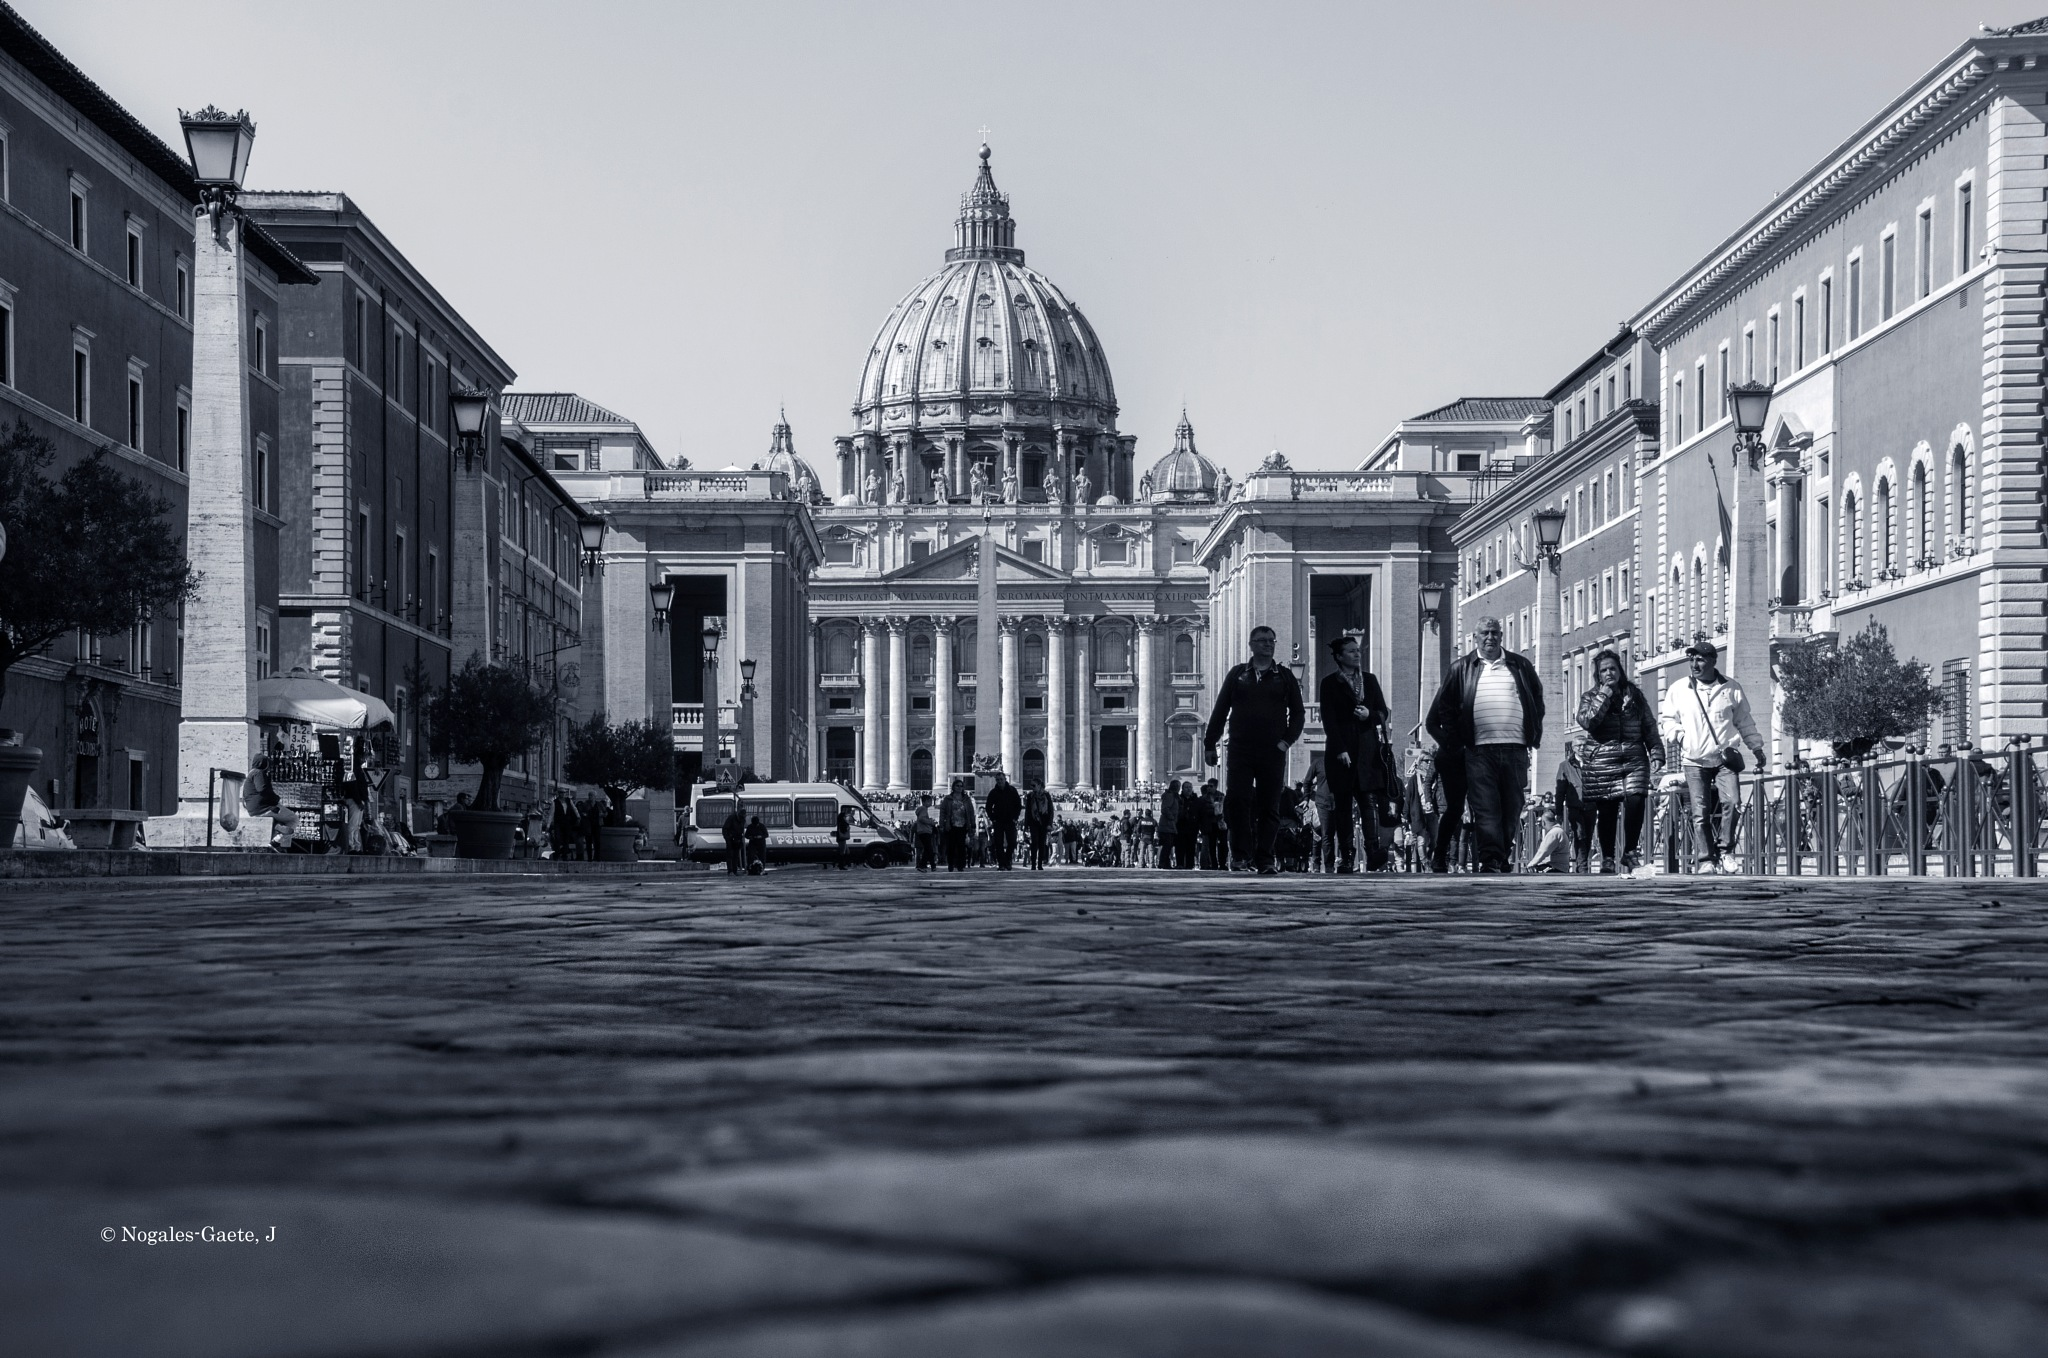 Papal Basilica of St. Peter in the Vatican (2) by Jorge Nogales